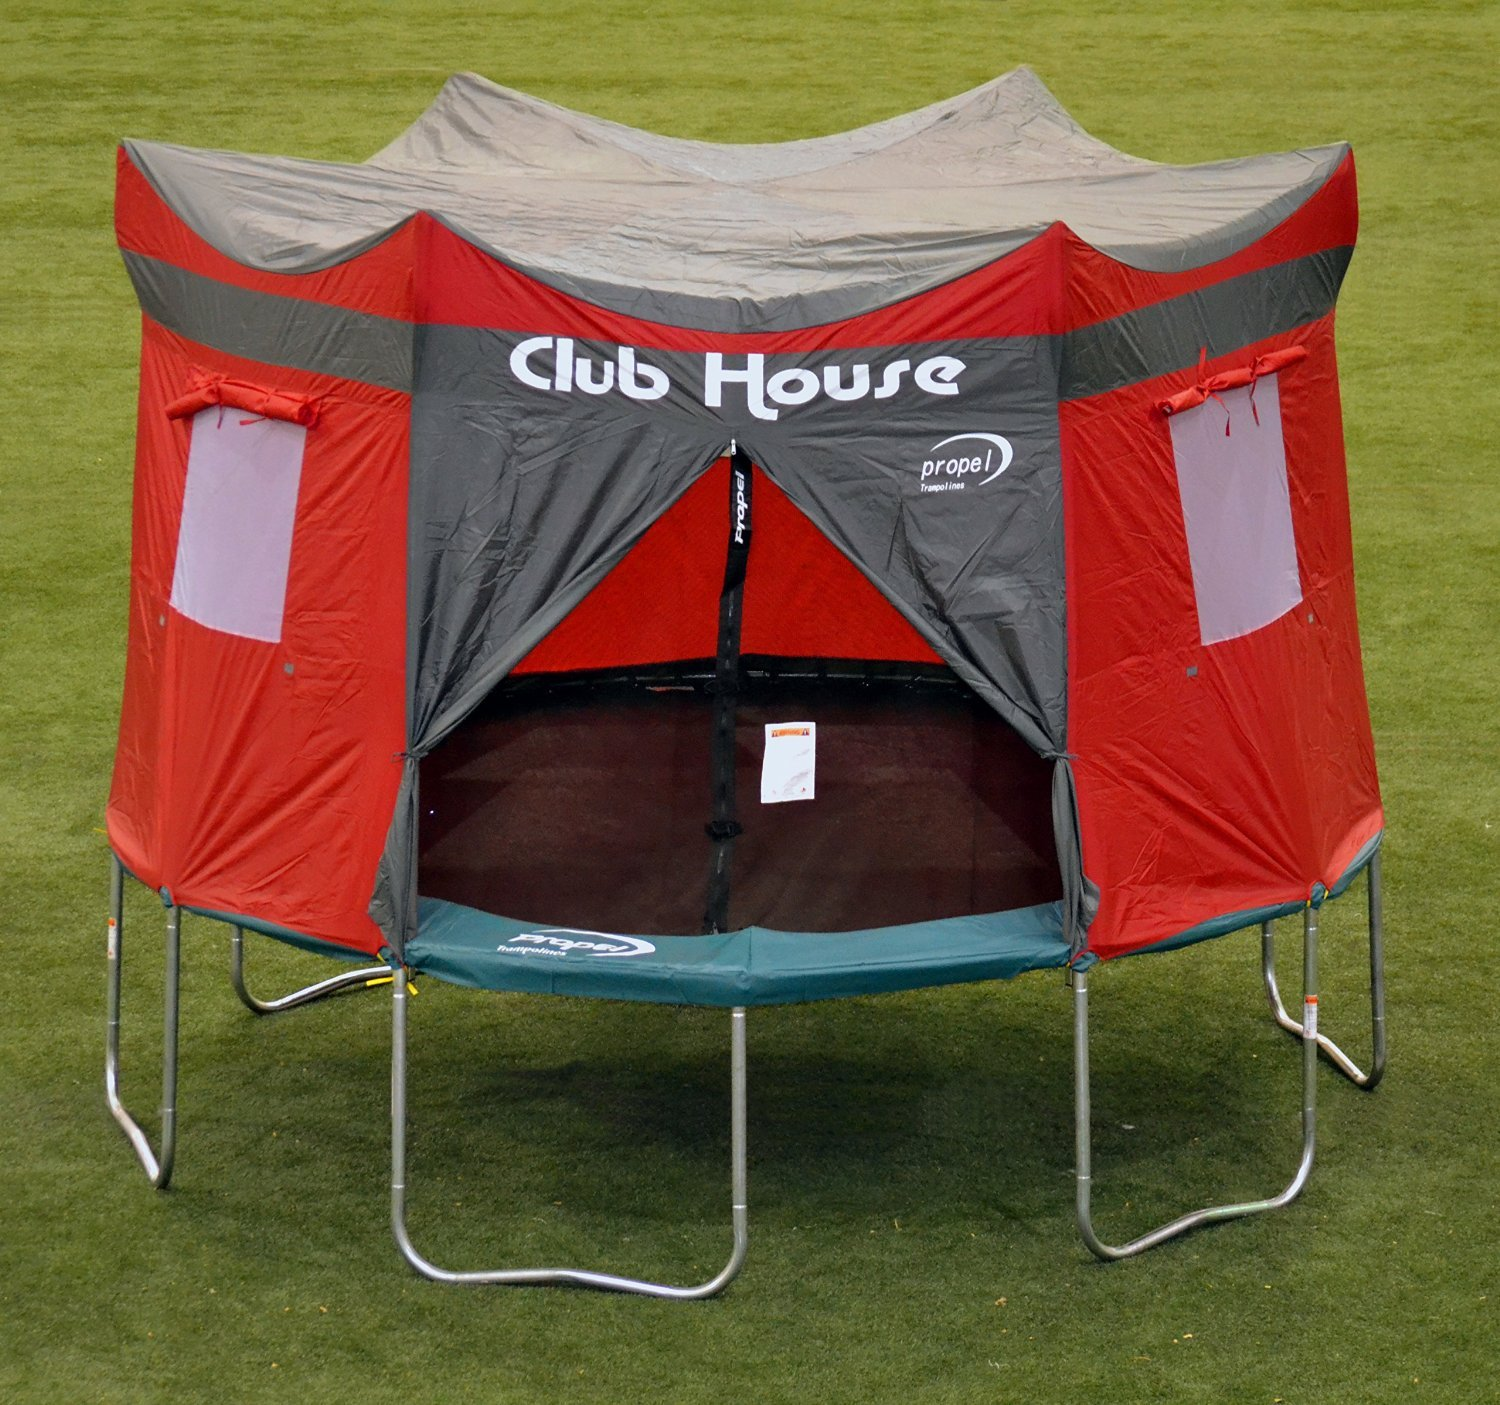 Clubhouse Tent Accessory Kit for Propel 12' Trampoline with 6 pole enclosure - TENT ONLY by Propel (Image #4)